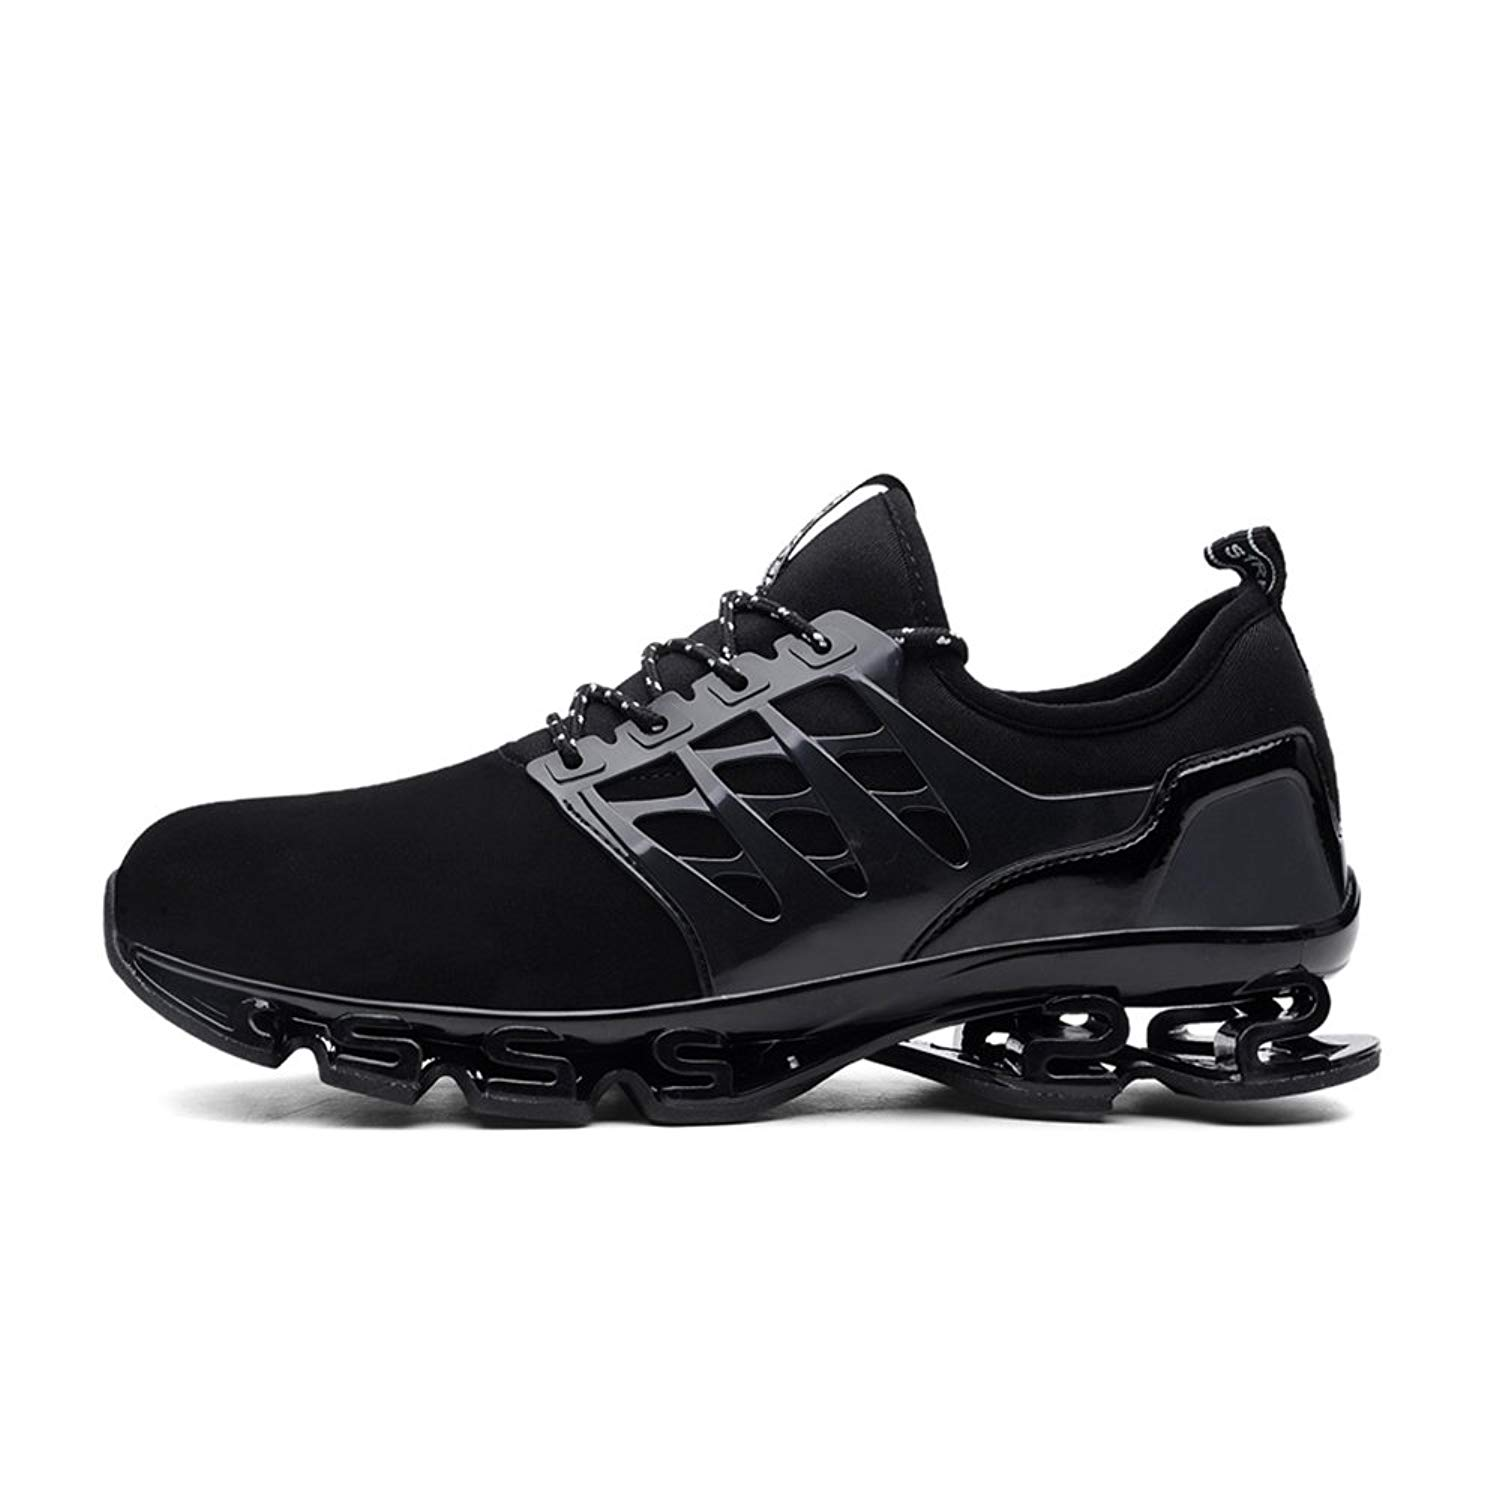 edbab5b6d2ae Get Quotations · HooyFeel Men s Non-Slip Sneaker Breathable Mesh Athletic  Running Shoes Walking Springblade Sport Shoes